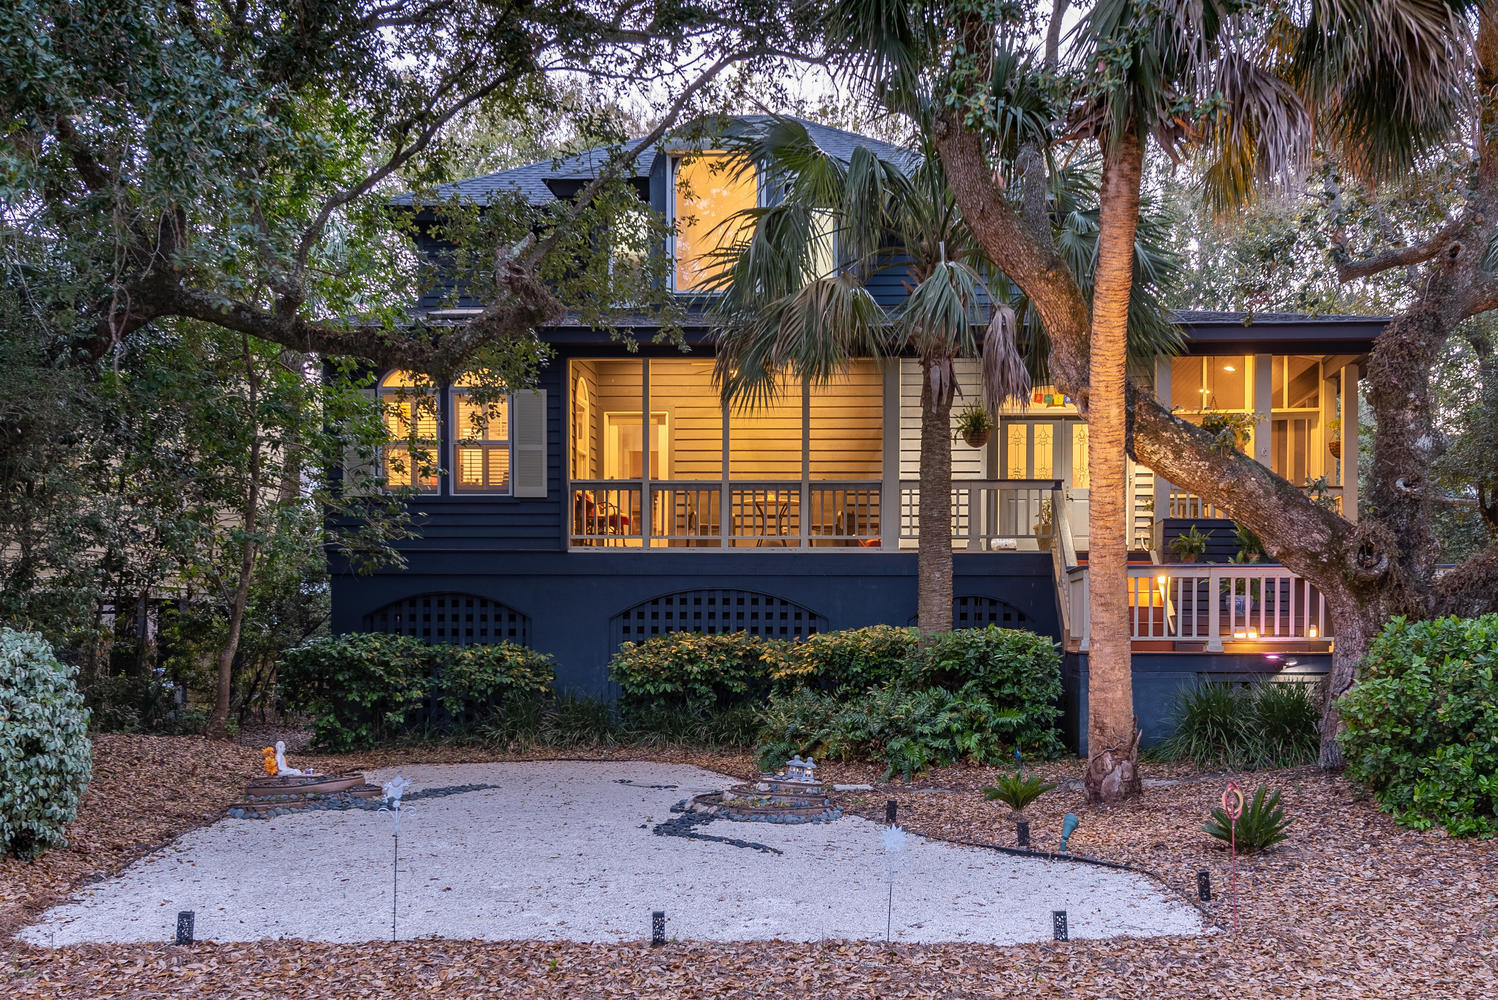 26 W Beachwood Isle Of Palms, SC 29451